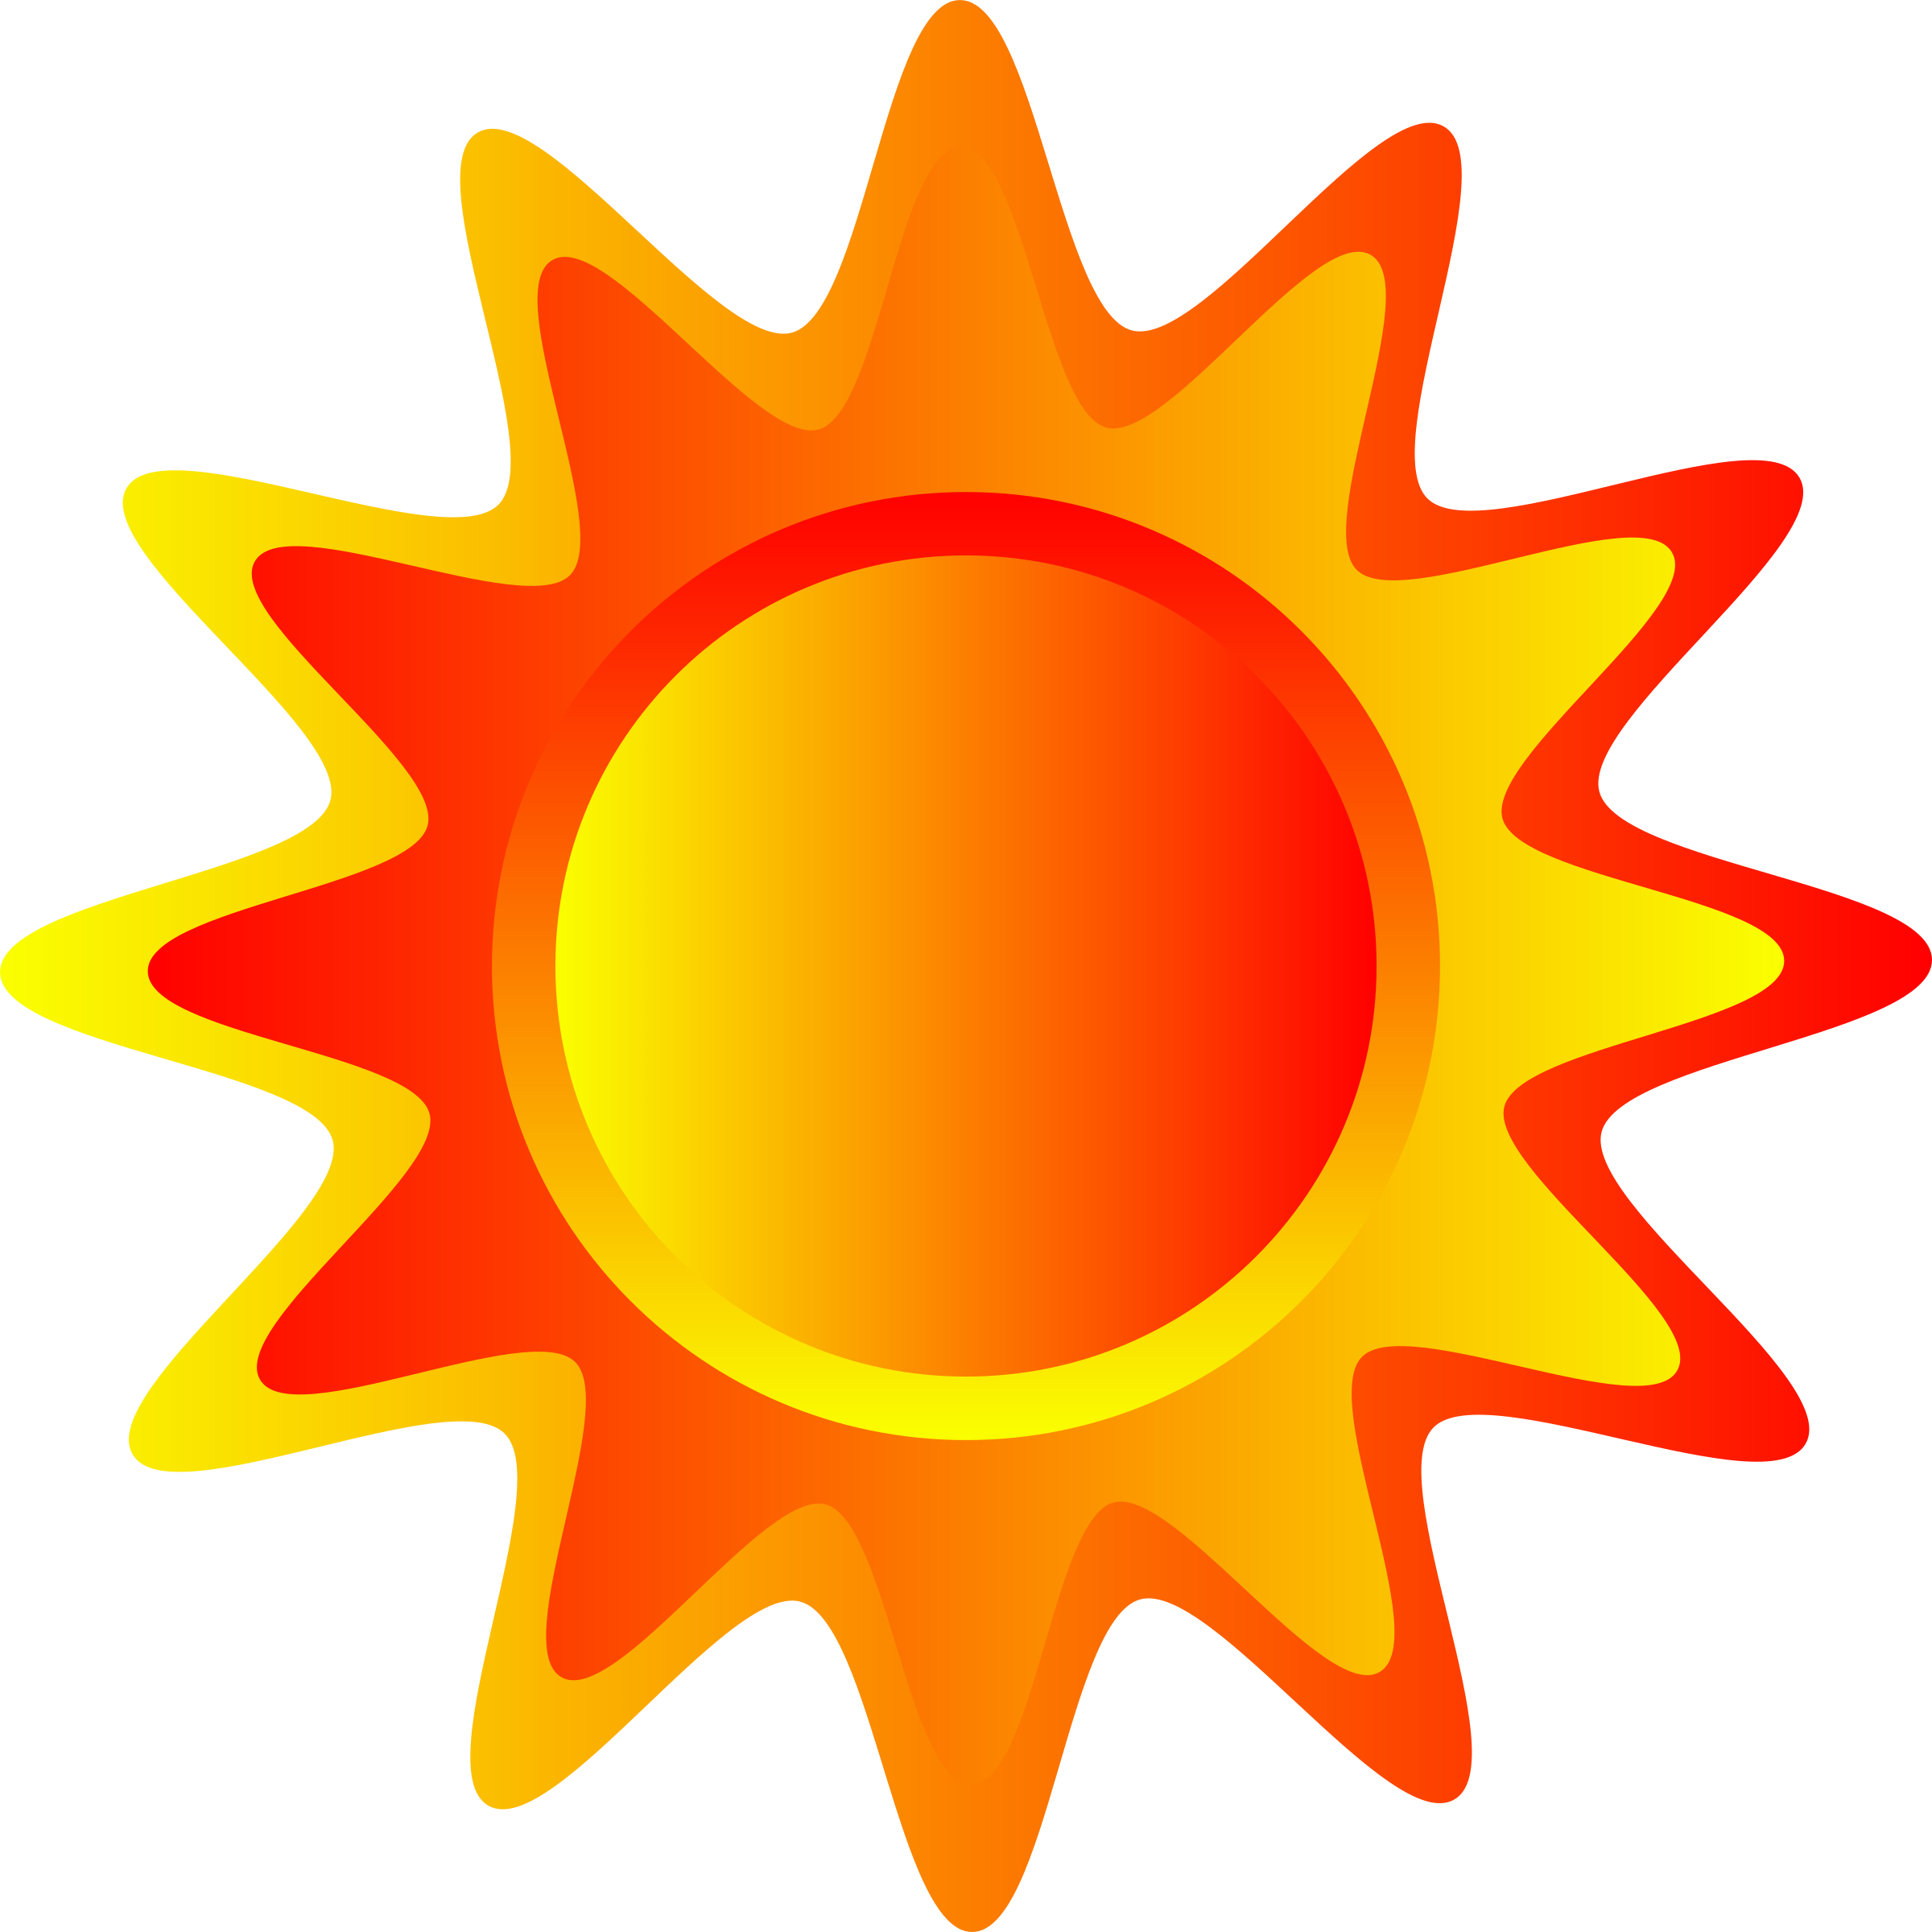 Big sun clipart banner stock Clipart - Red, orange and yellow sun banner stock